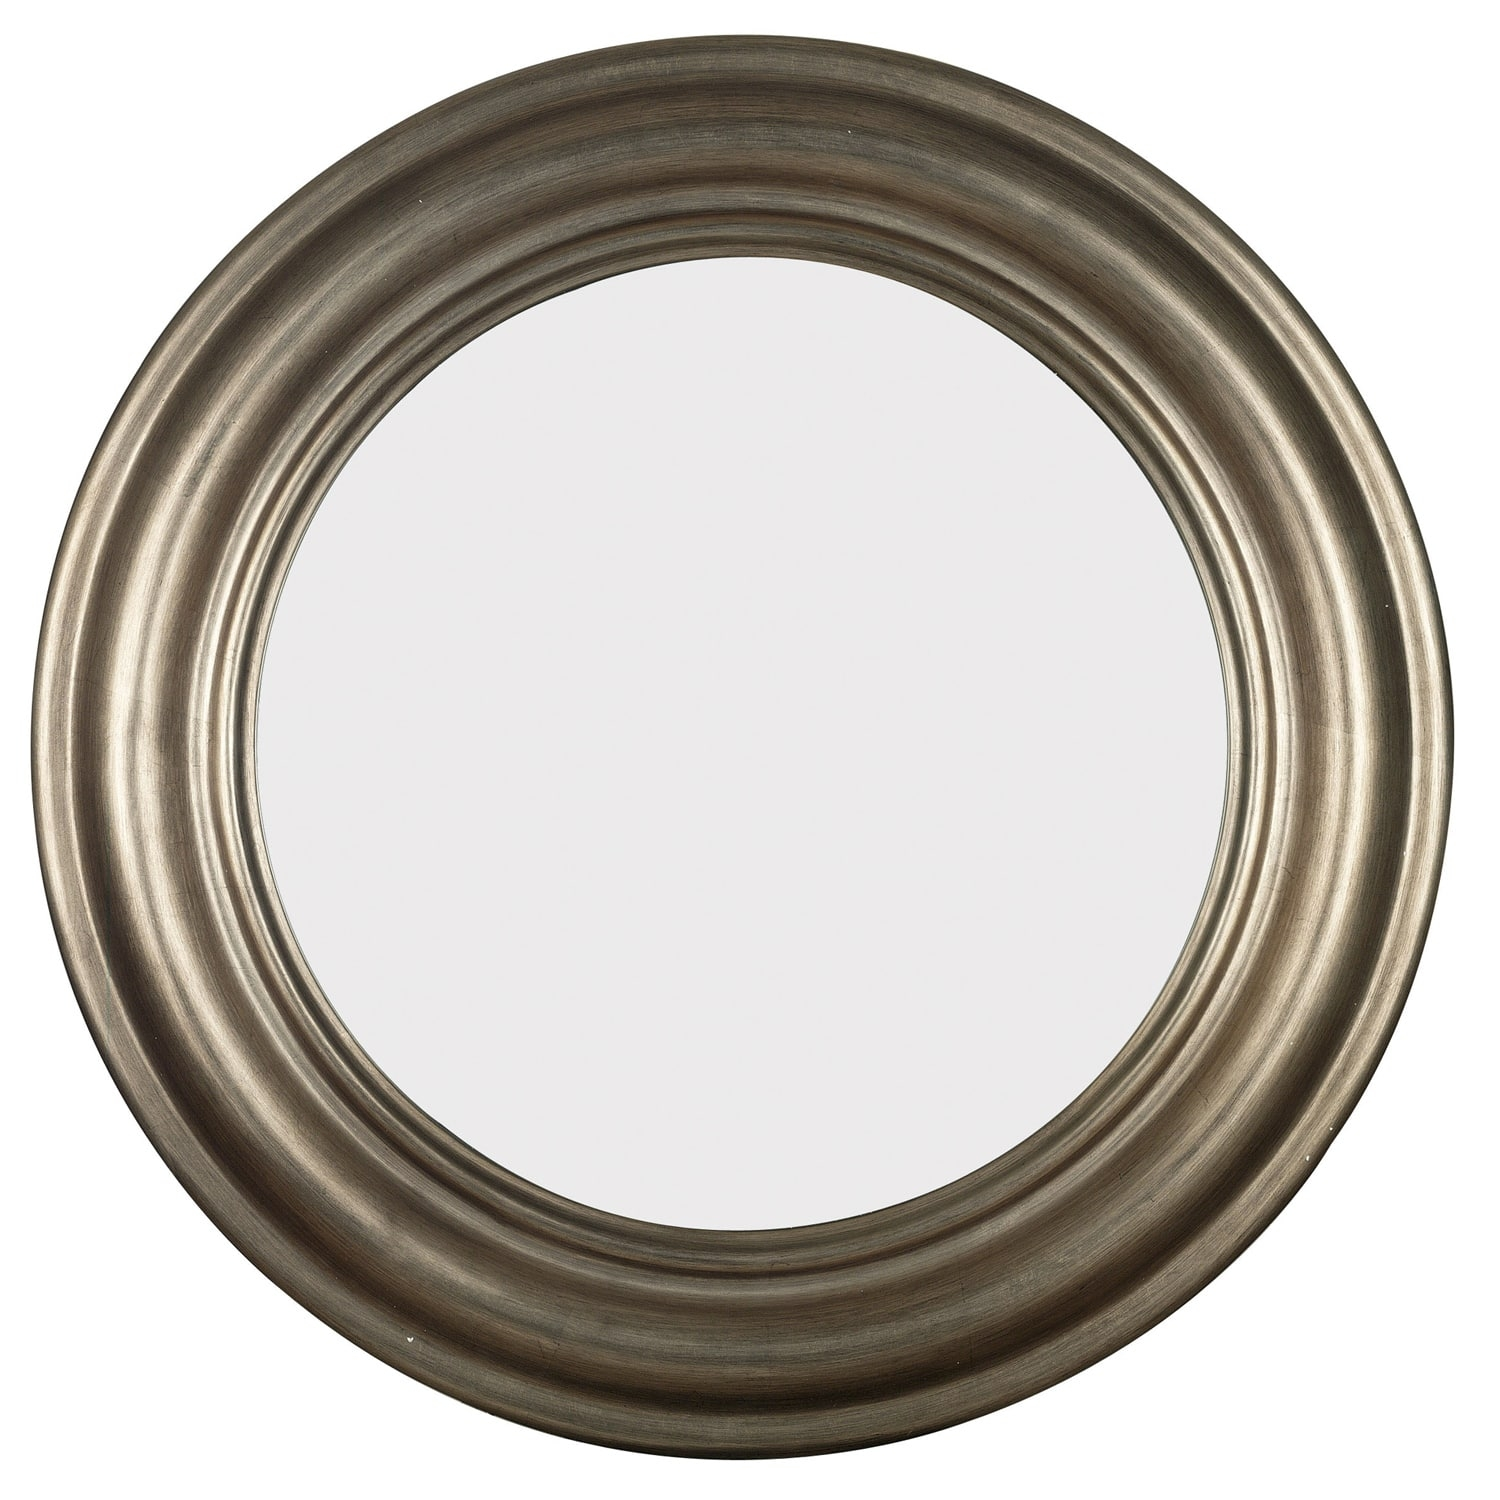 Permalink to Round Antique Silver Wall Mirror